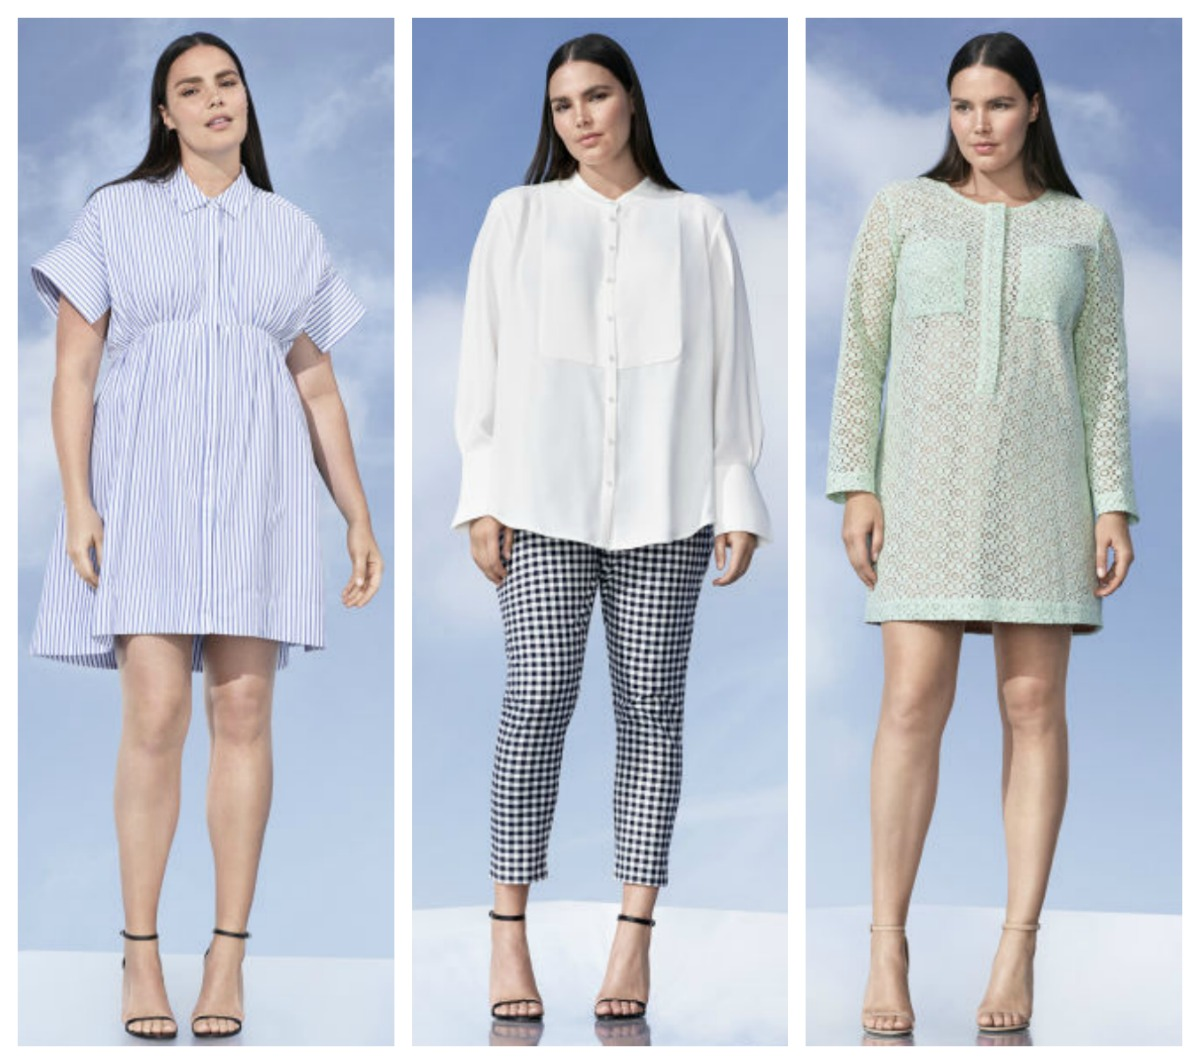 Victoria Beckham Target Collection Includes Plus Sizes | Stylish Curves